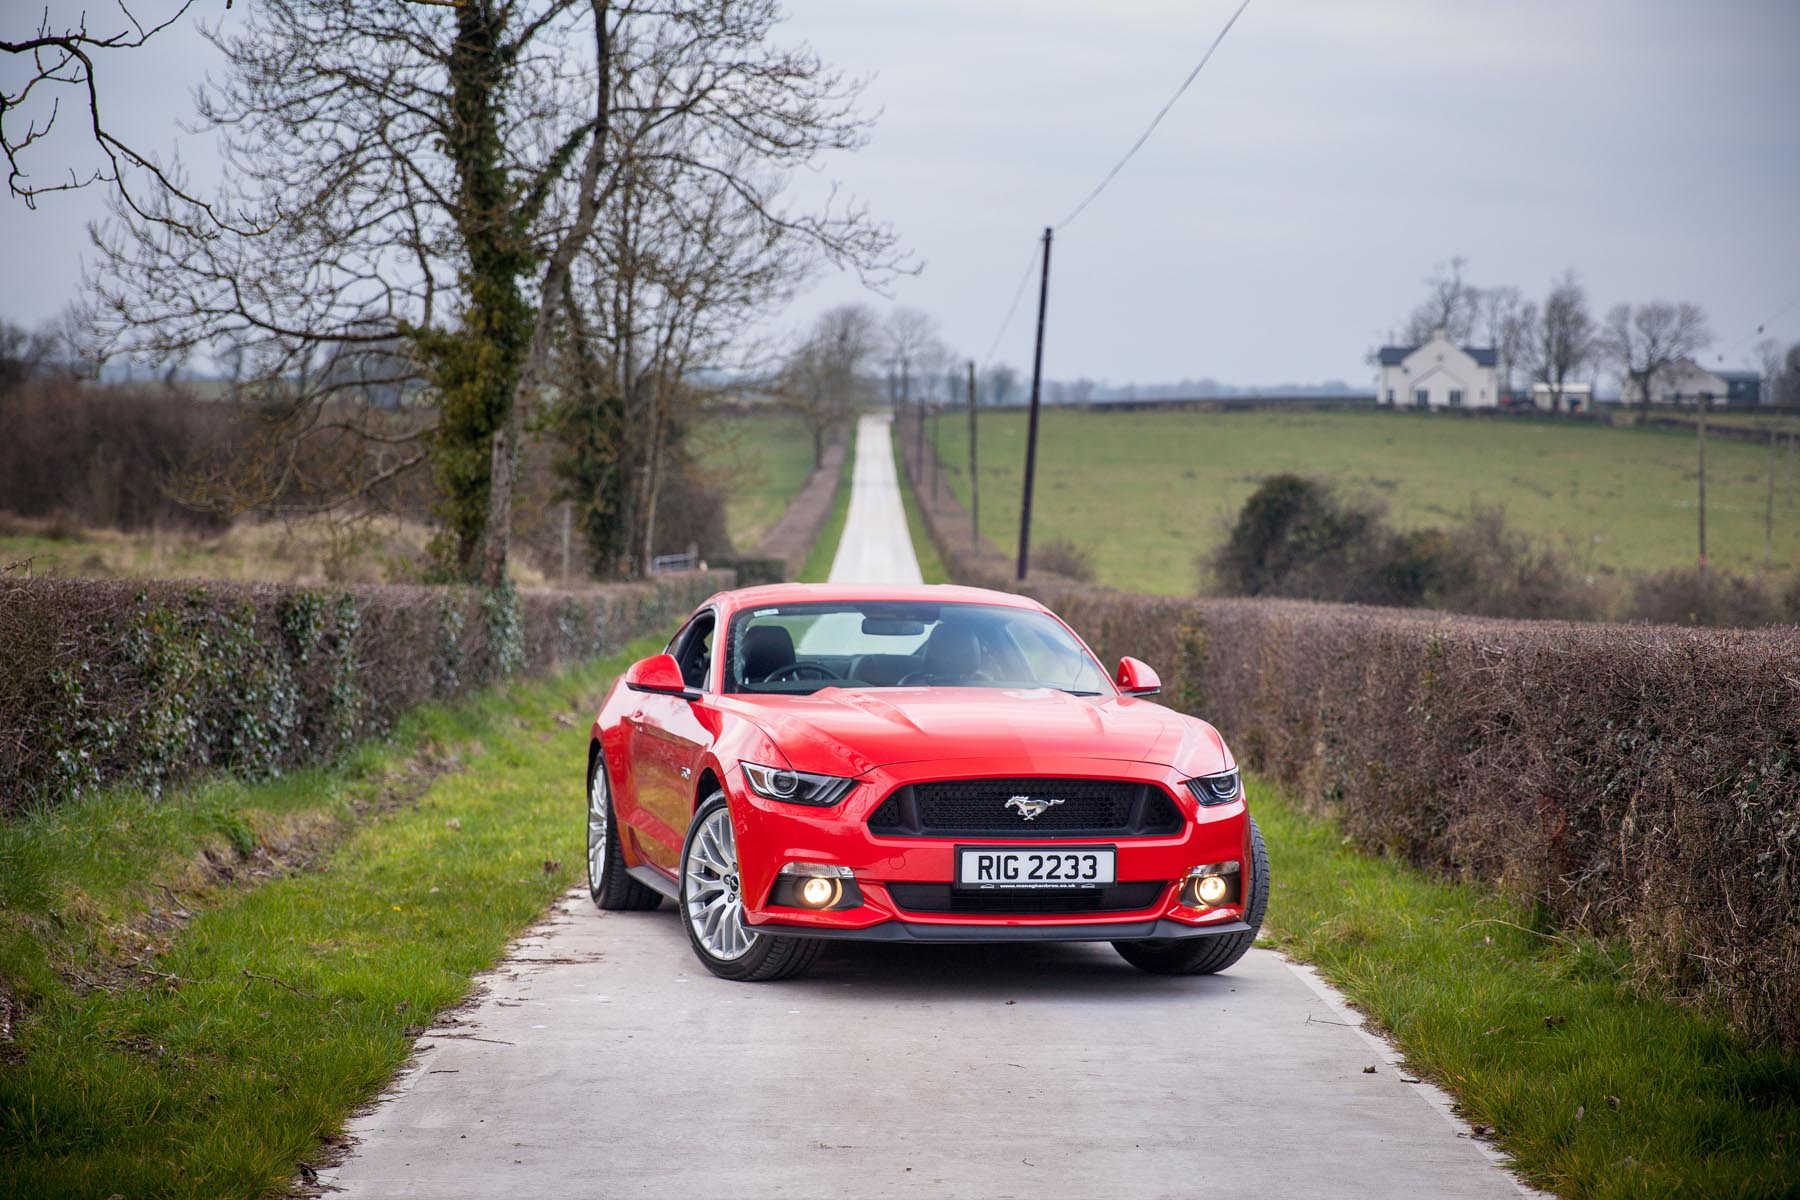 In the middle of 1964 Ford Motor Company in America launched the Ford Mustang a four seater coupé that offered style iniduality and muscle under the ... & FORD UNLEASH A BEAST IN RIGHT HAND DRIVE | Used Cars NI Blog markmcfarlin.com